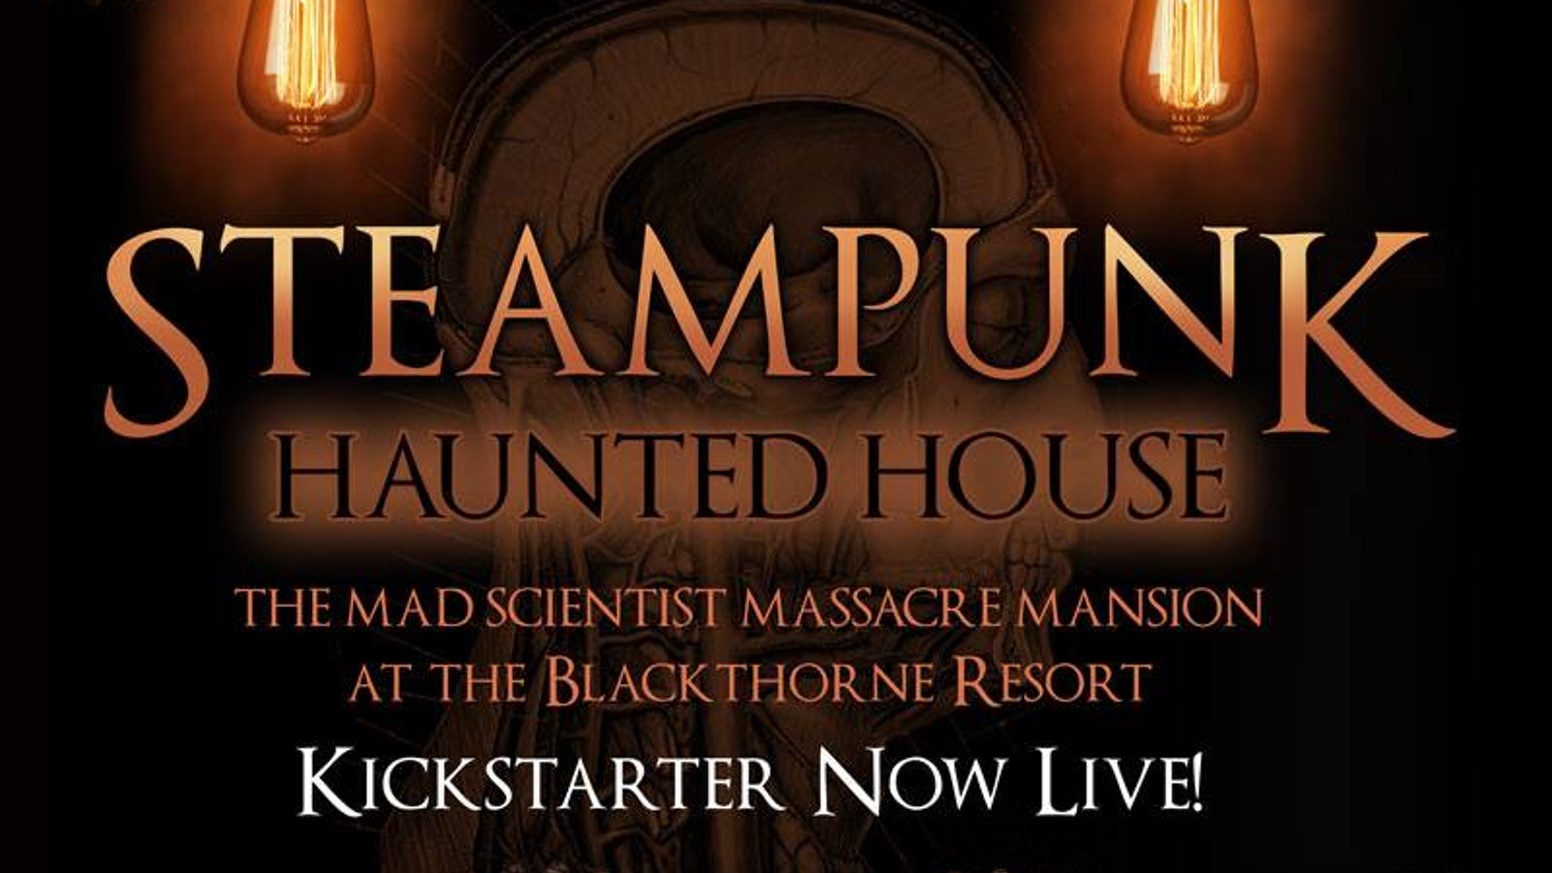 Steampunk Haunted House: Halloween Forever! by Jeff Mach » We're